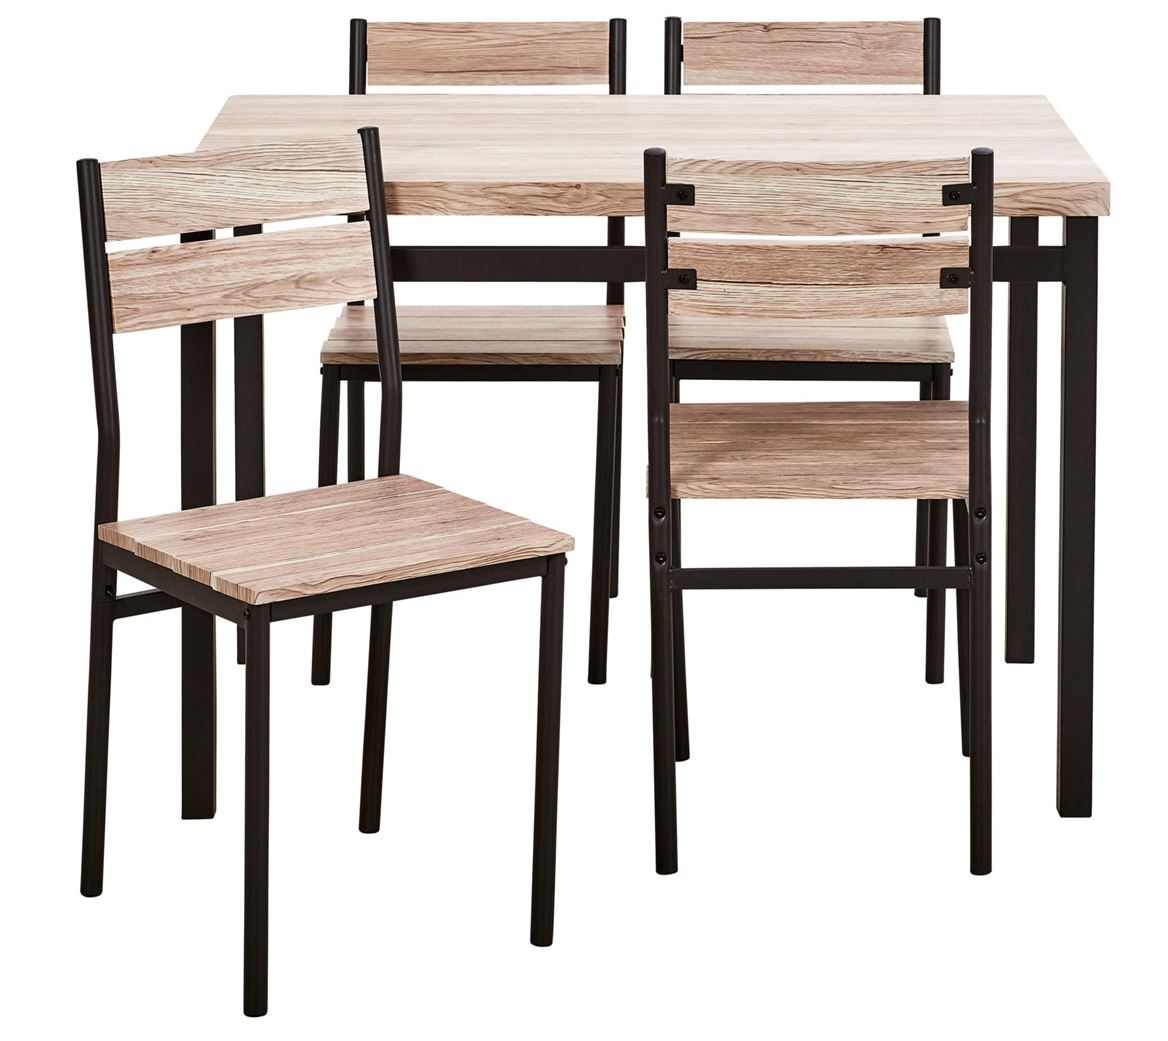 Table Avec Chaise Table Ronde Chaises Encastrables